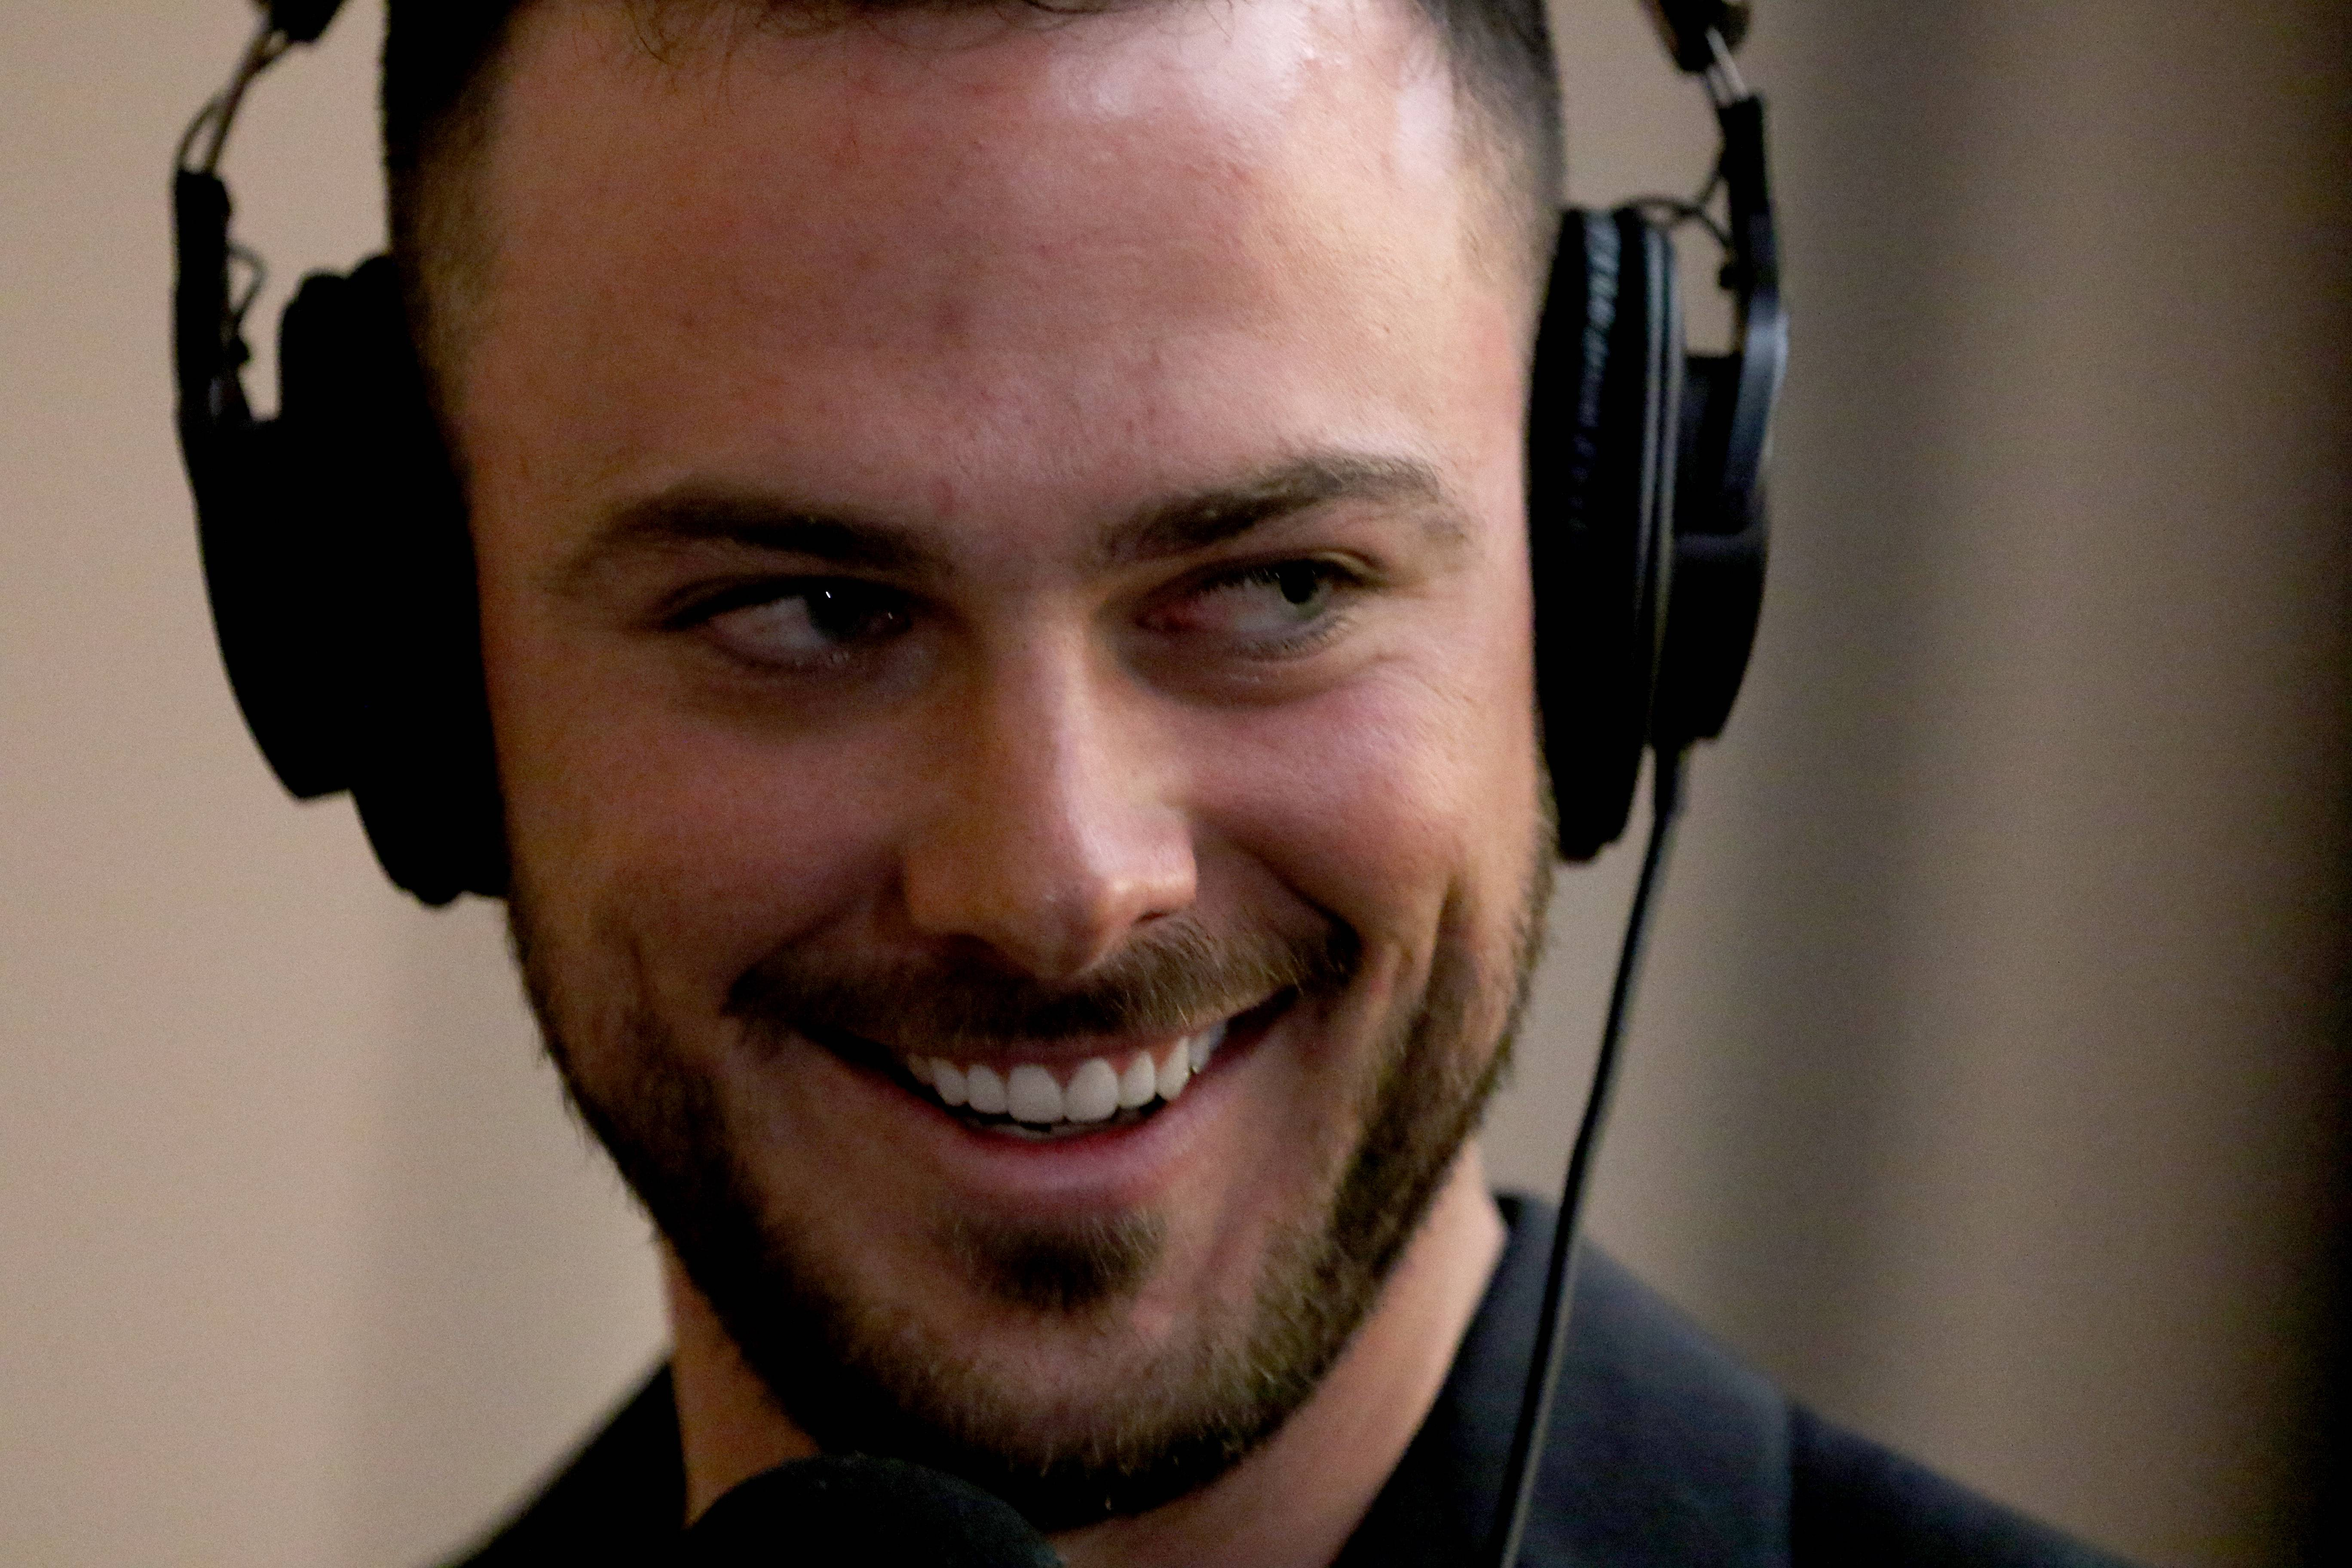 Kris Bryant smiles while doing a radio interview during opening night of the 33rd annual Cubs Convention in Chicago Friday night.